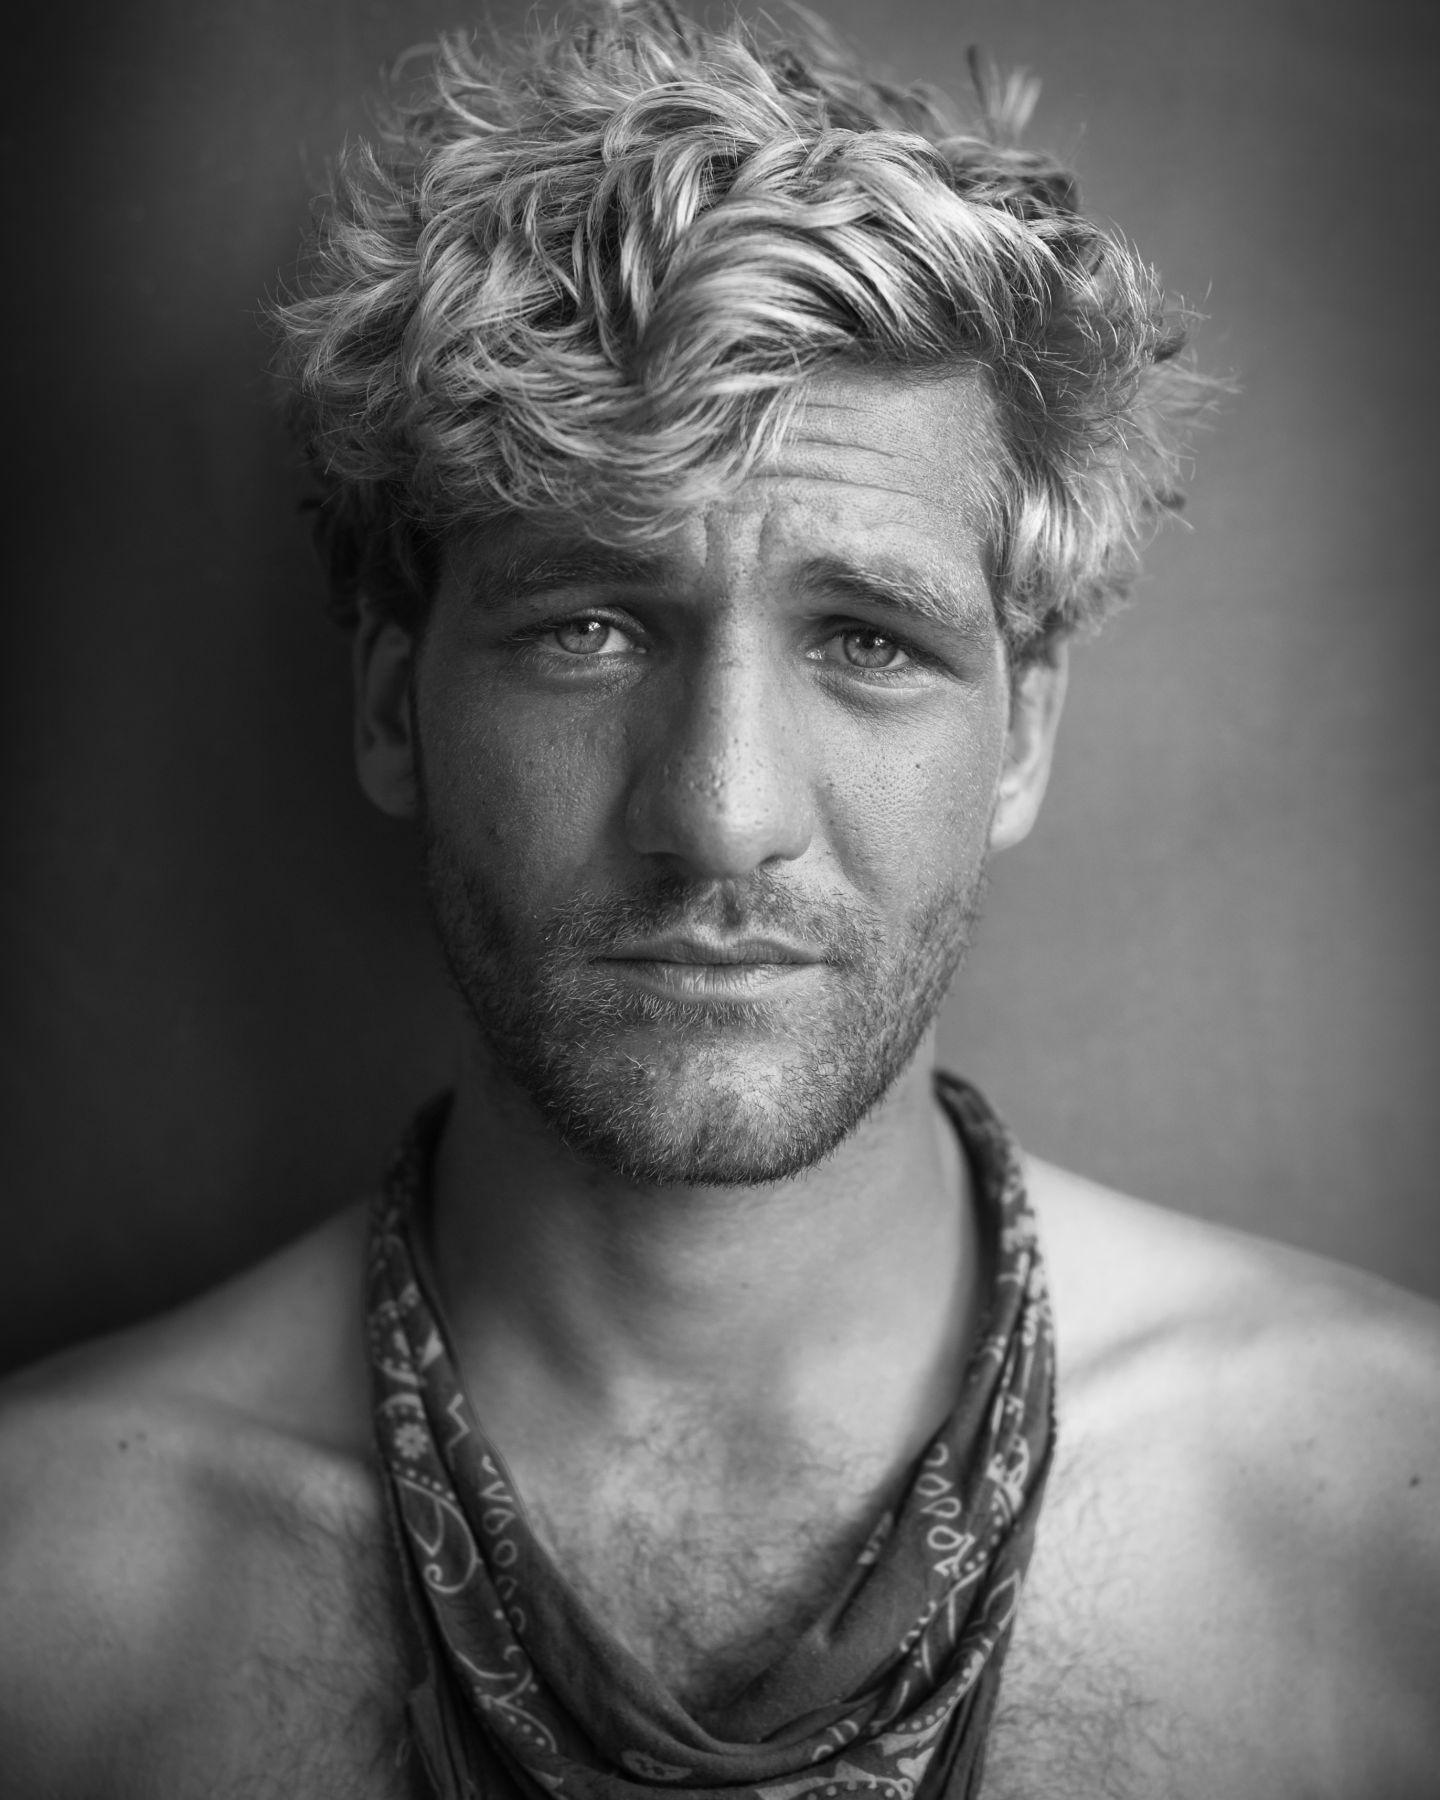 Blonde man with bandana by Michael Joseph